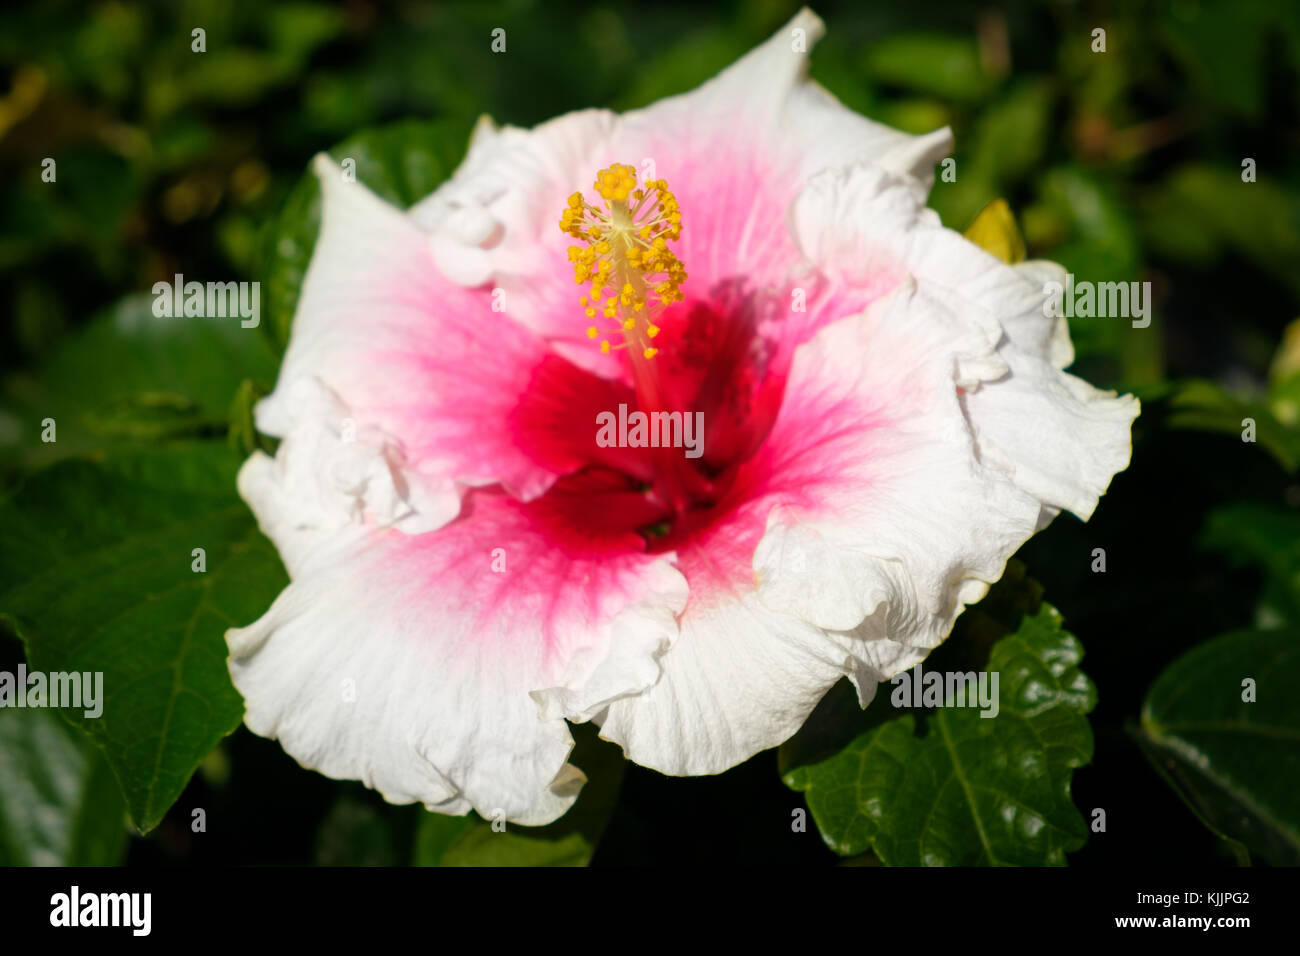 Roselle Flowers Stock Photos Roselle Flowers Stock Images Alamy